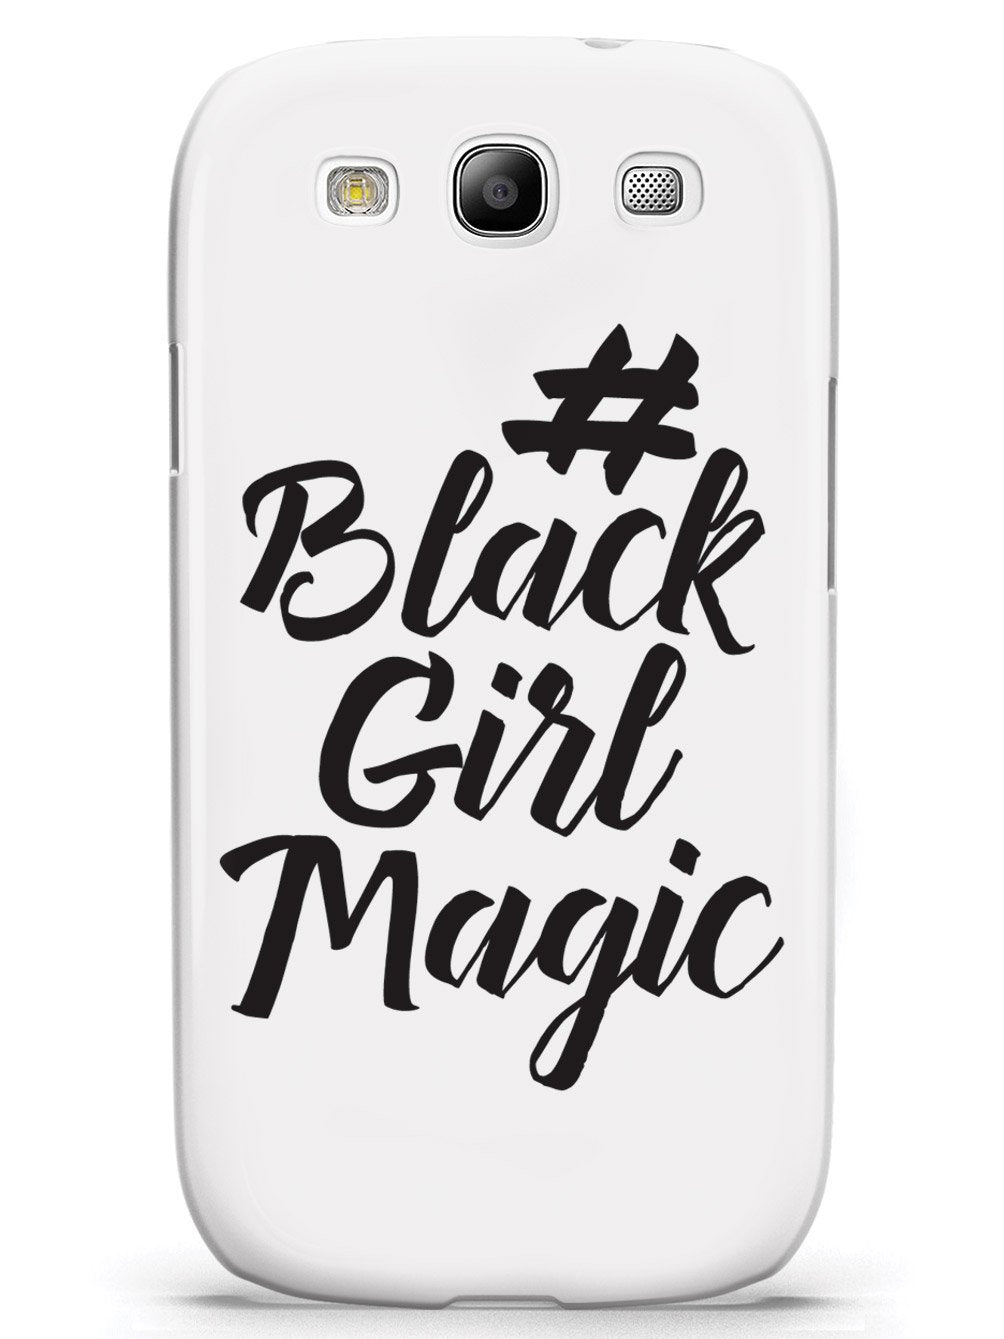 #BlackGirlMagic - White Case - pipercleo.com